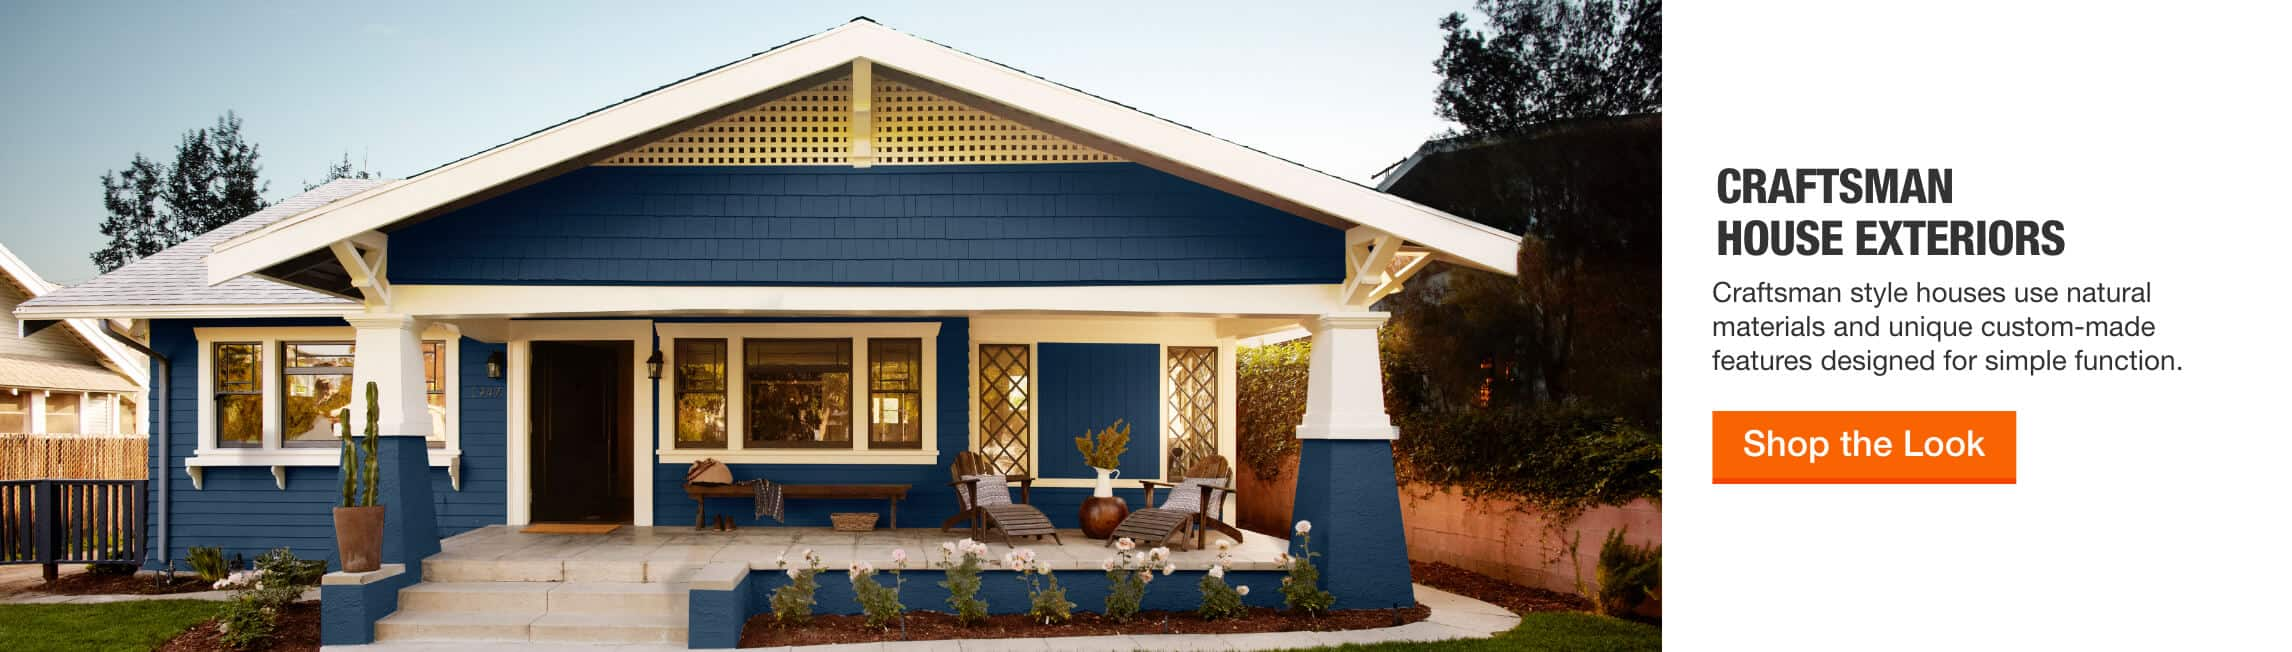 Craftsman House Exteriors - Craftsman style houses use natural materials and unique custom-made features designed for simple function. > Shop the Look